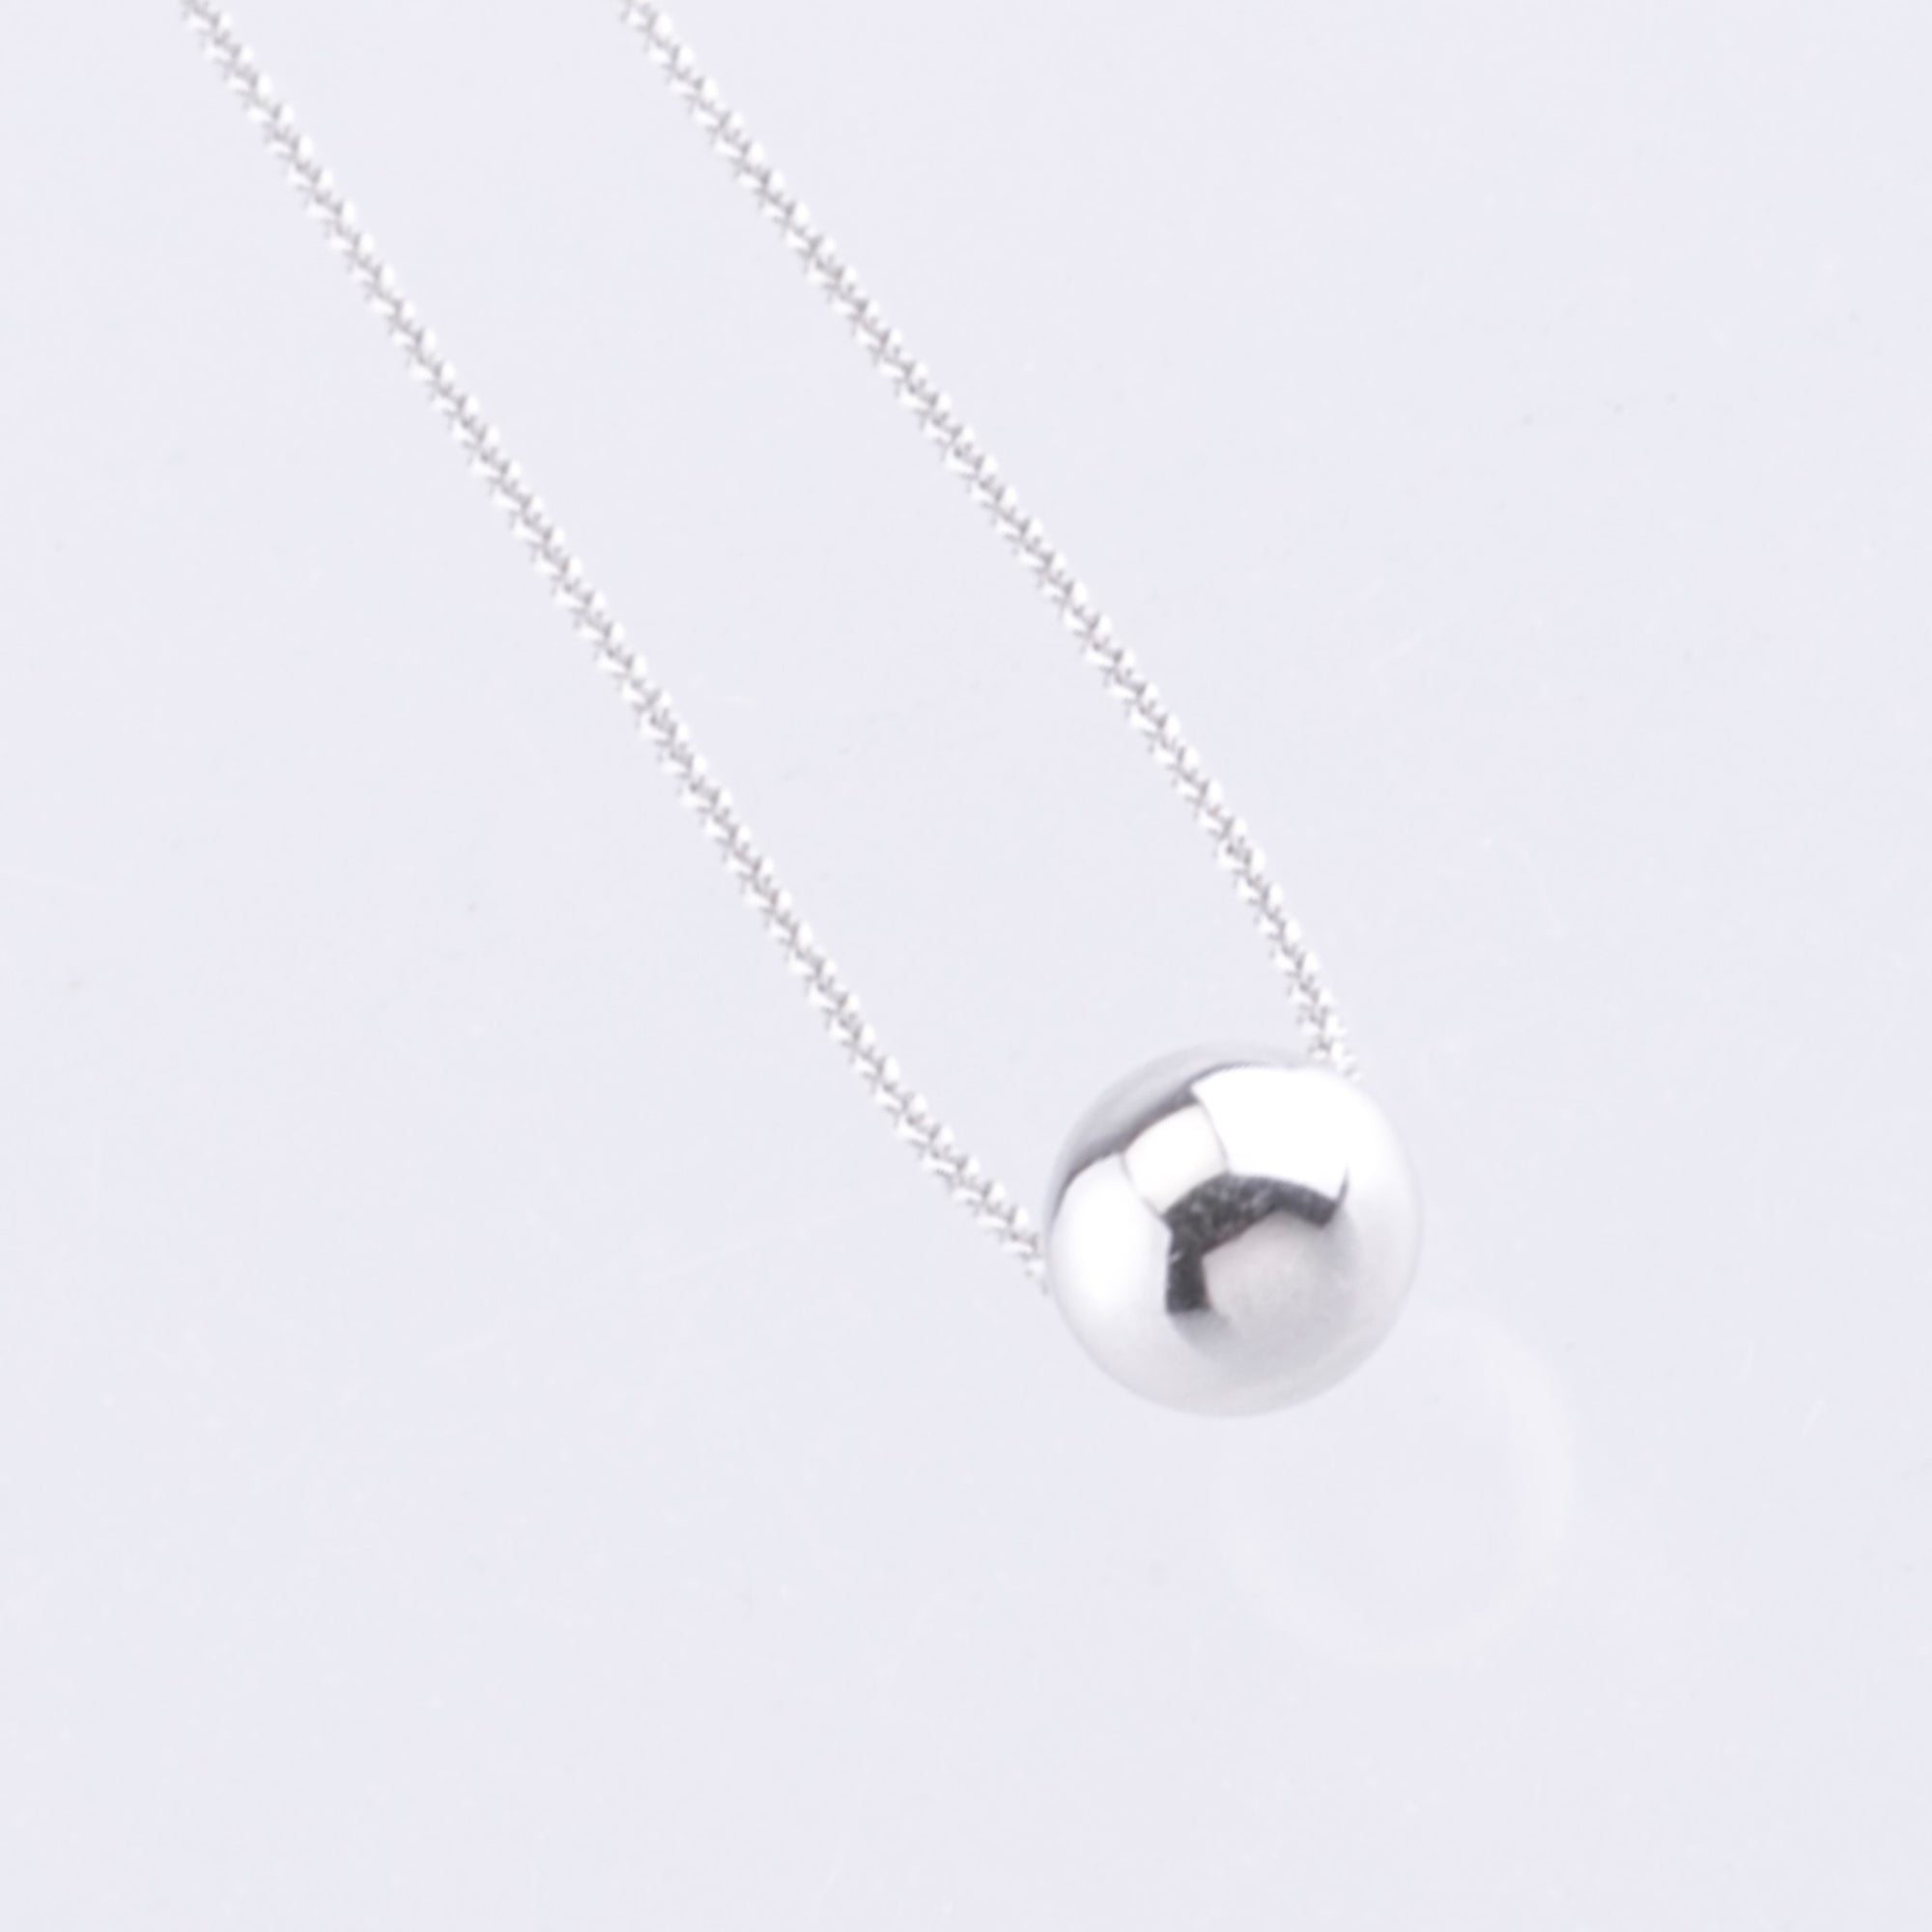 9ct white gold solid bead pendant necklace